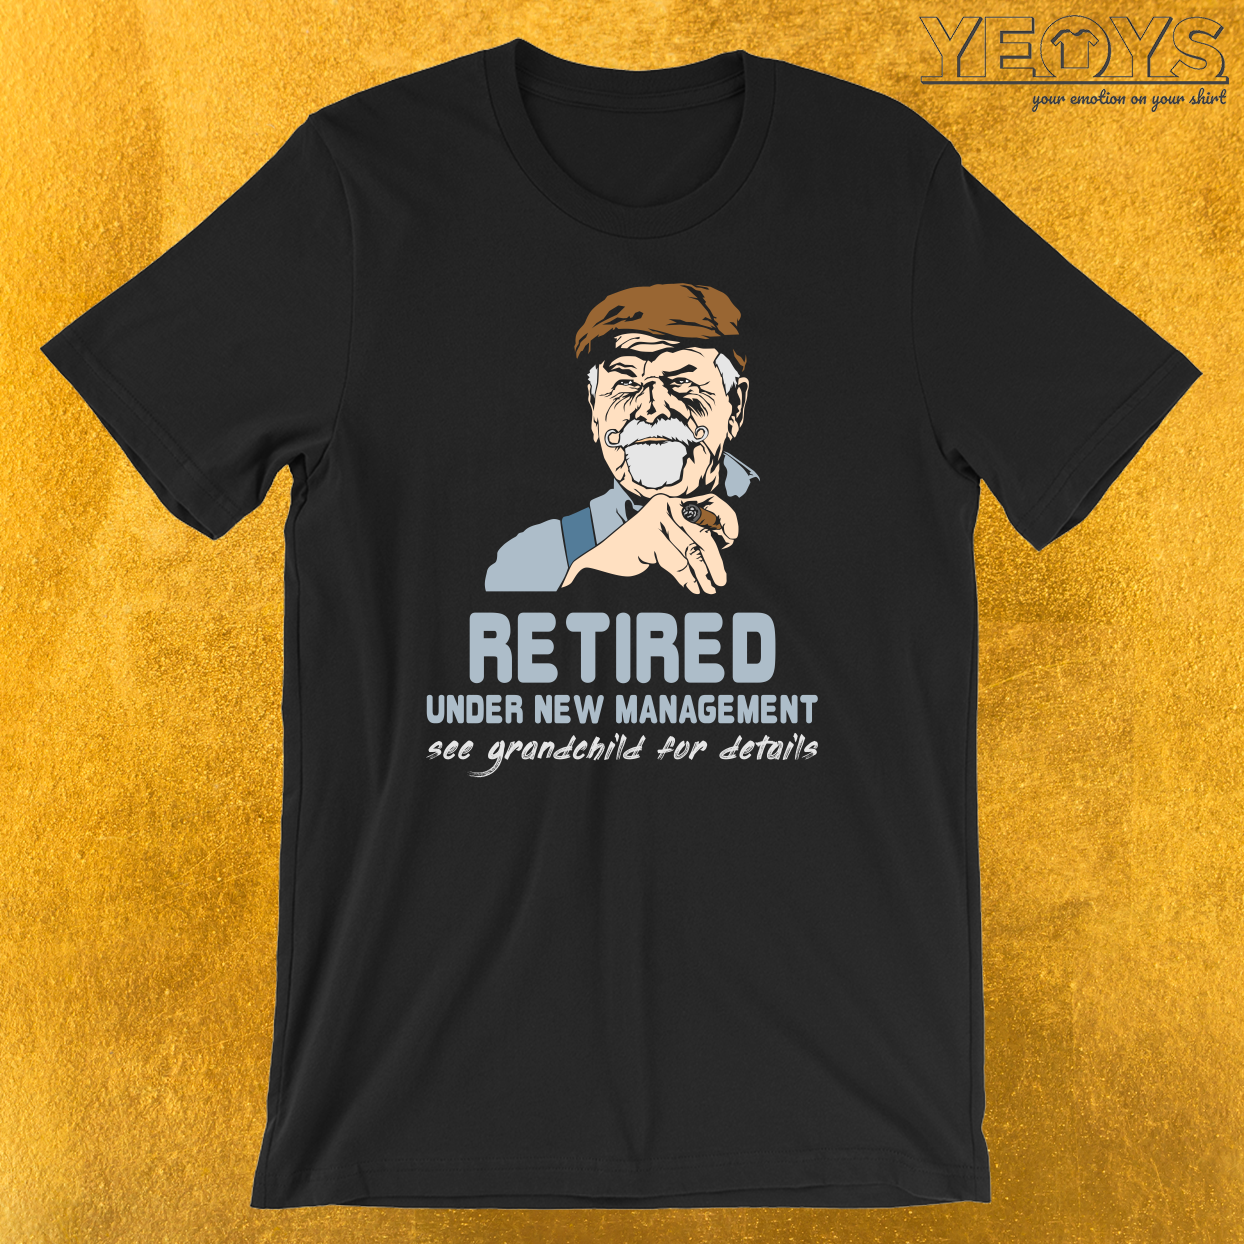 Retired Under New Management Grandchild T-Shirt